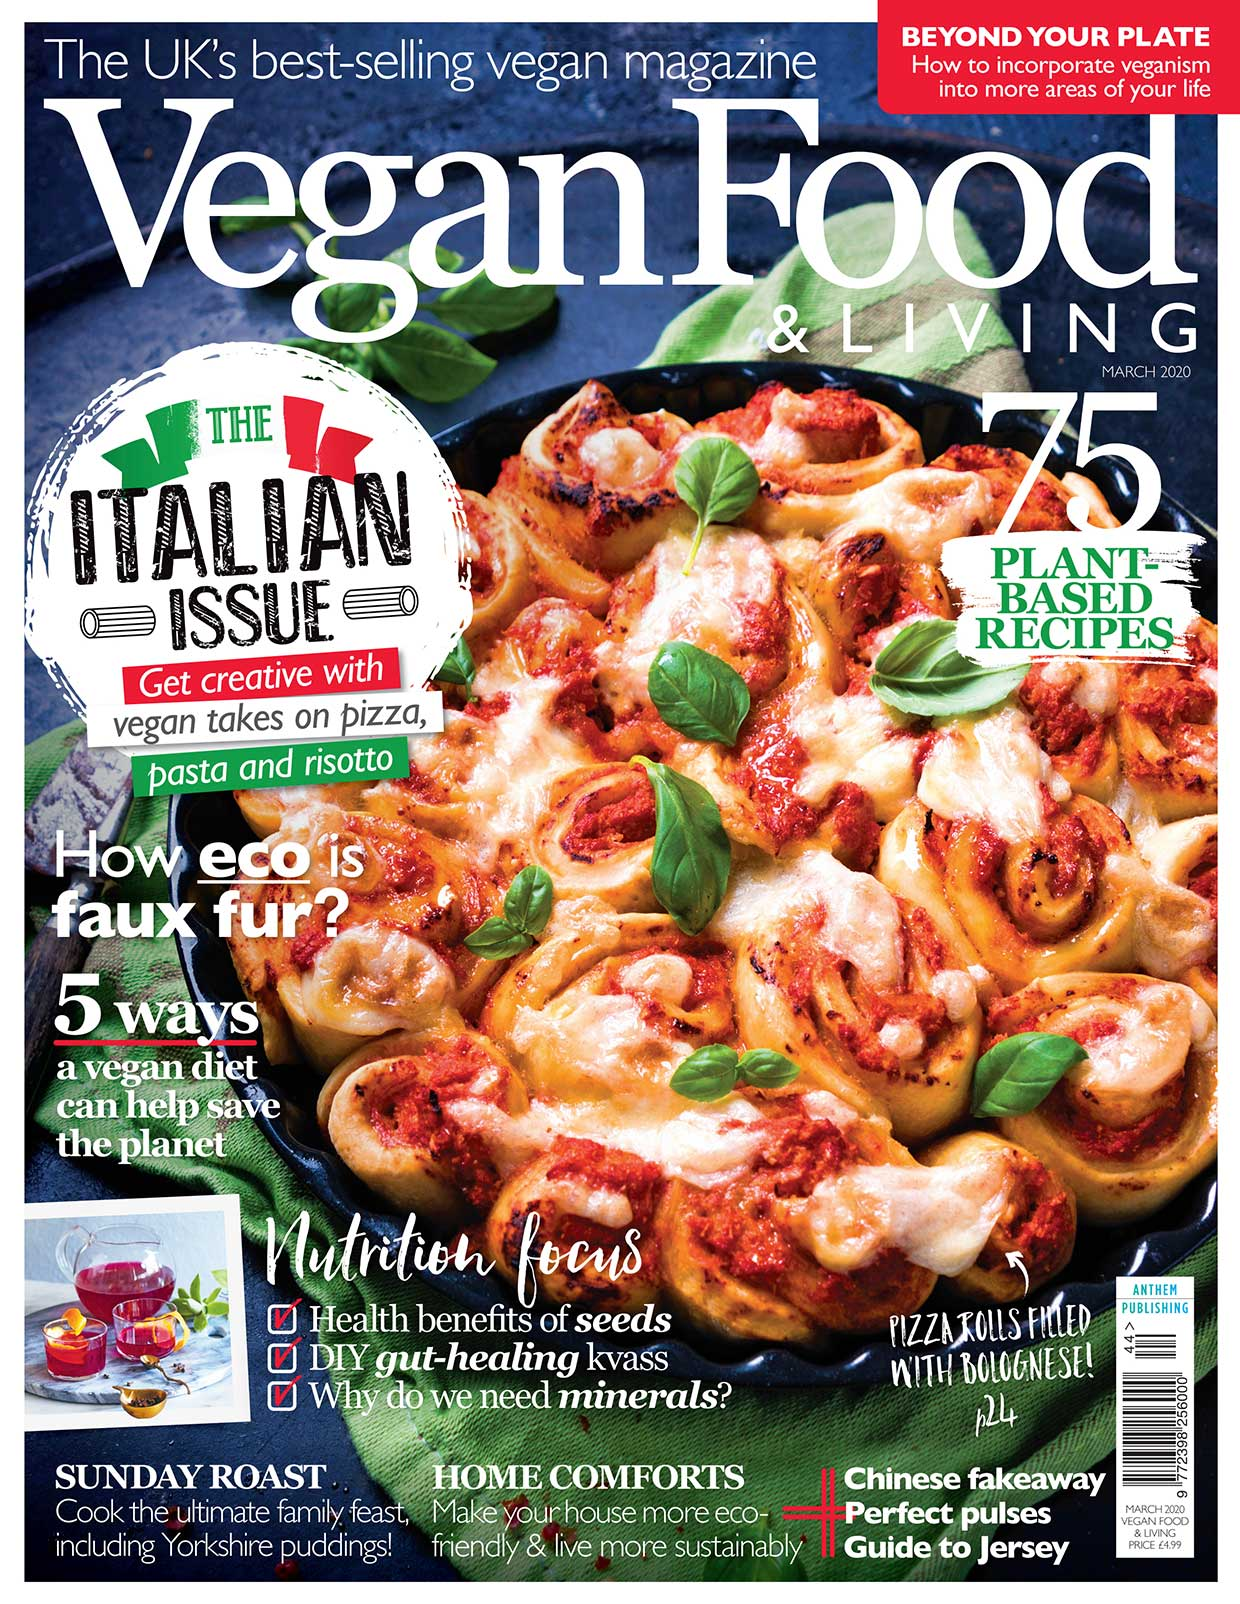 Brush up on your vegan pizza making skills with the Italian issue of Vegan Food & Living